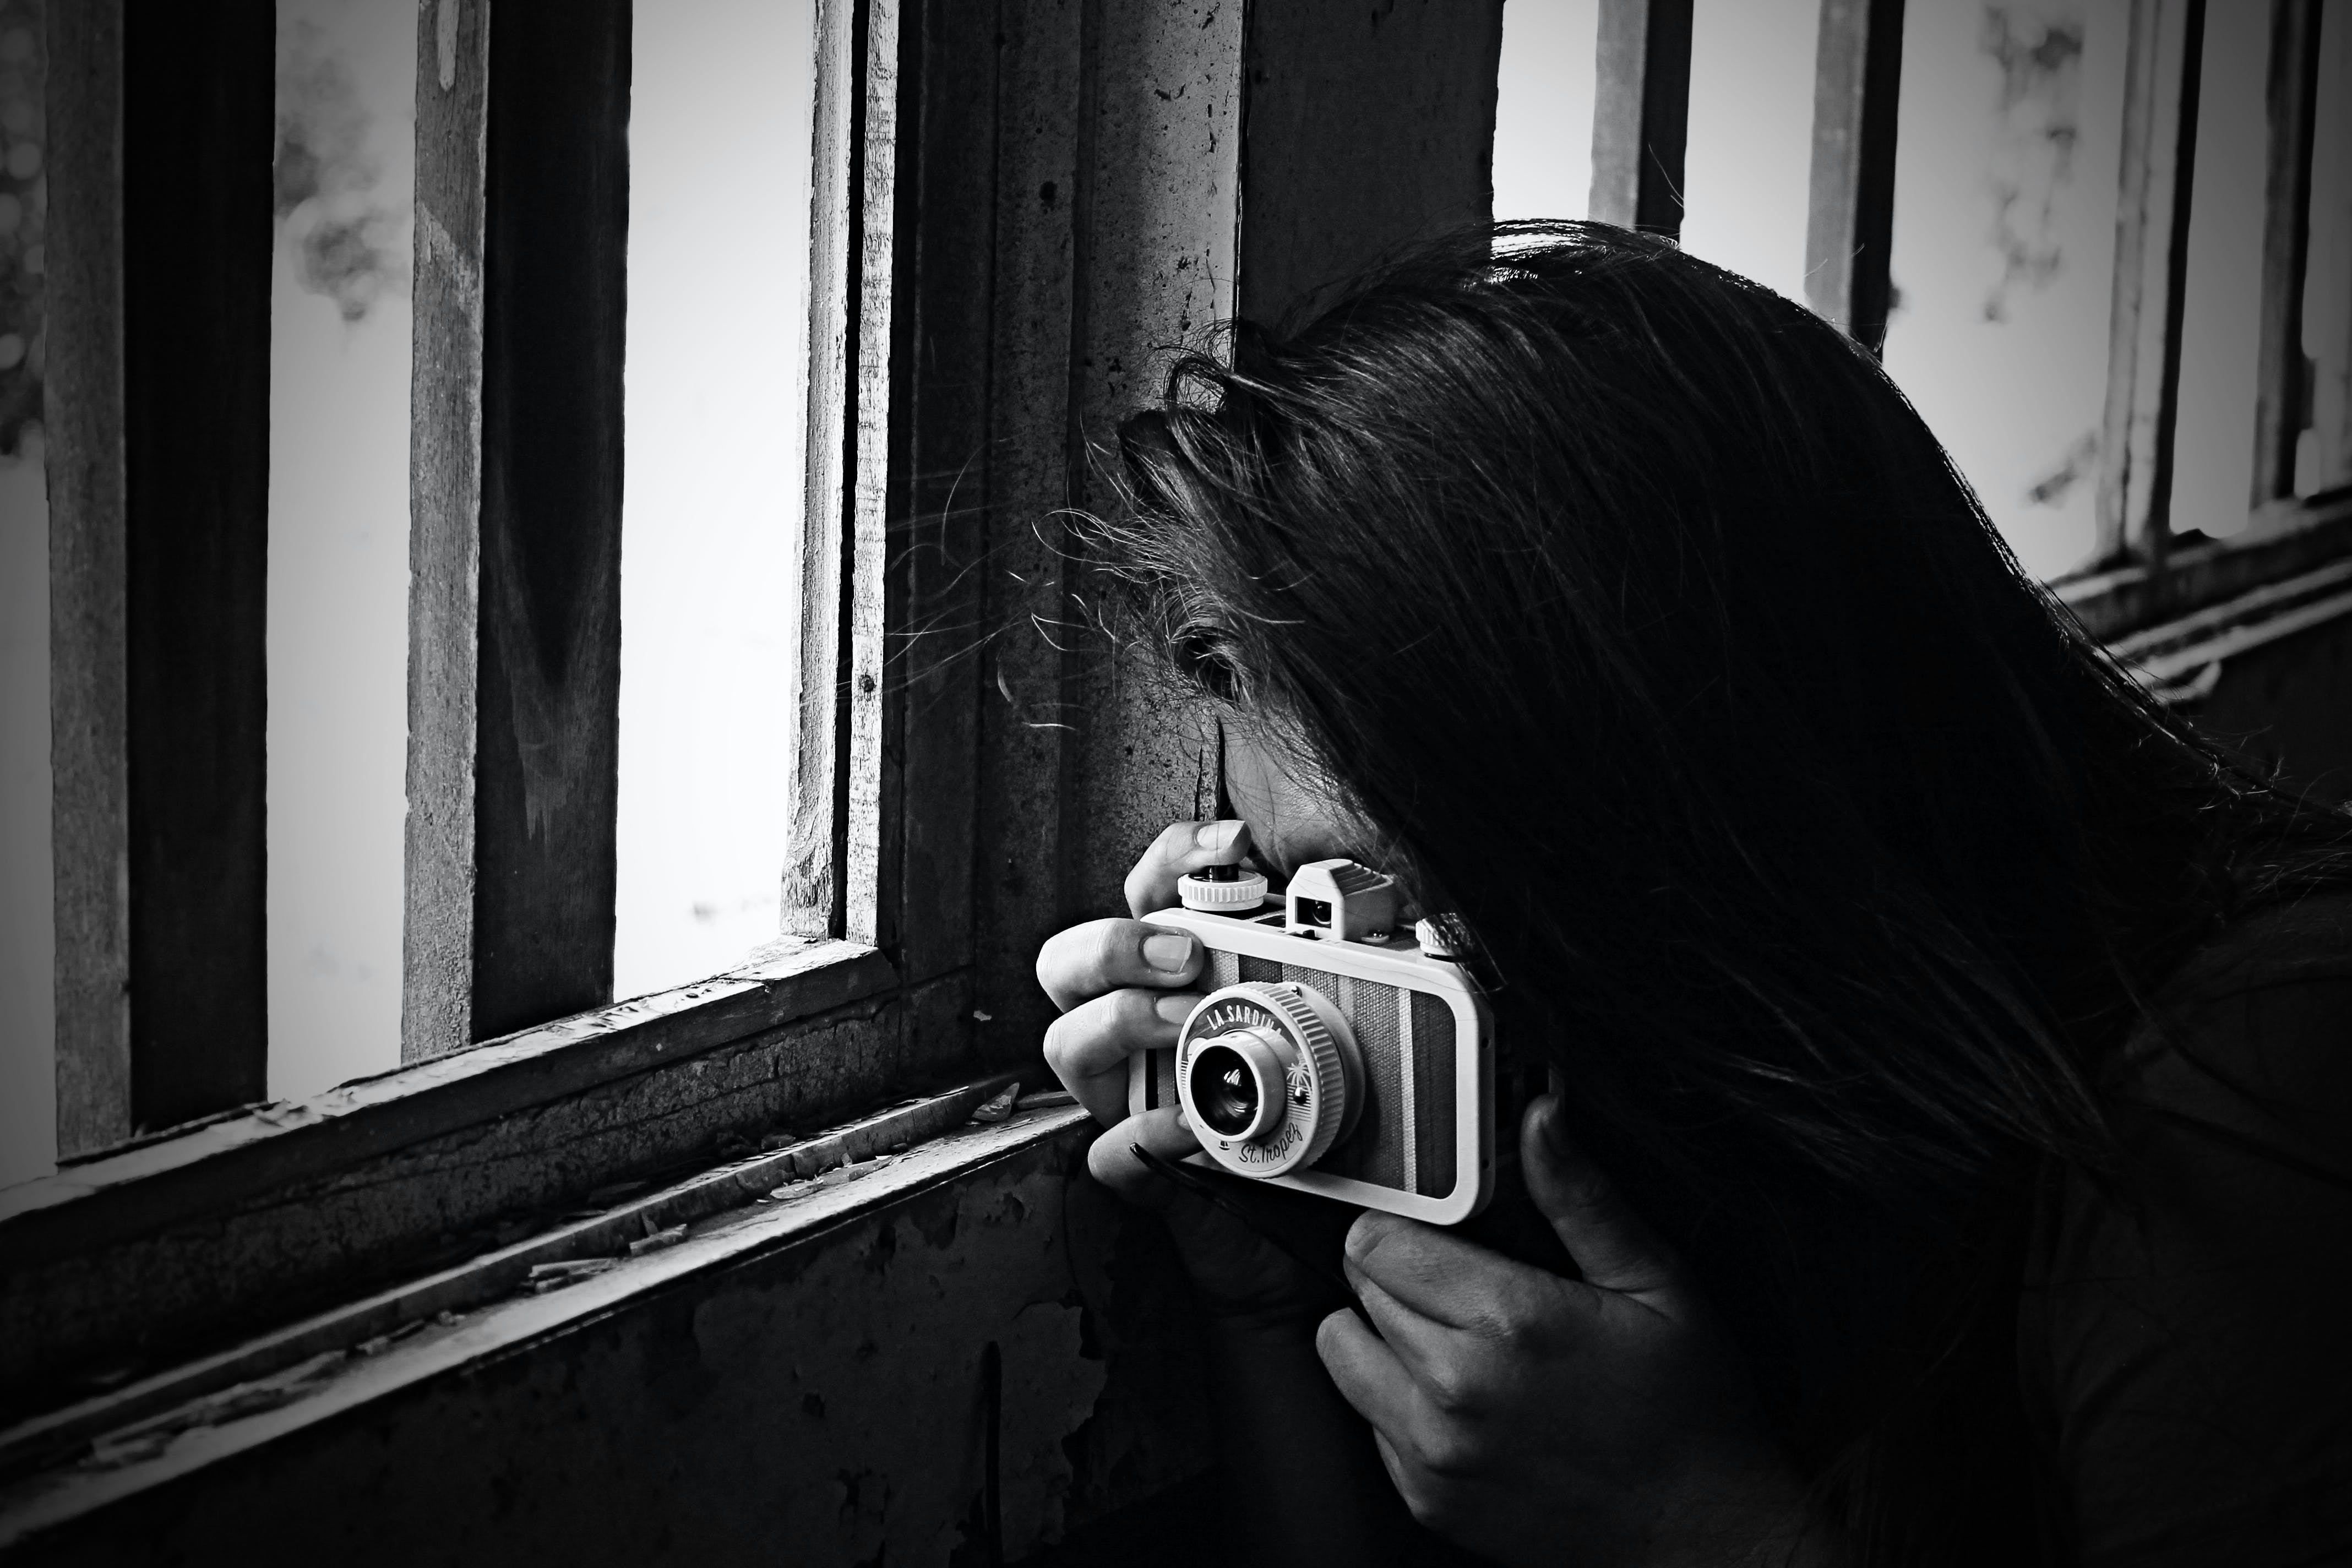 Grayscale Photo of Woman Taking Photo Beside Window